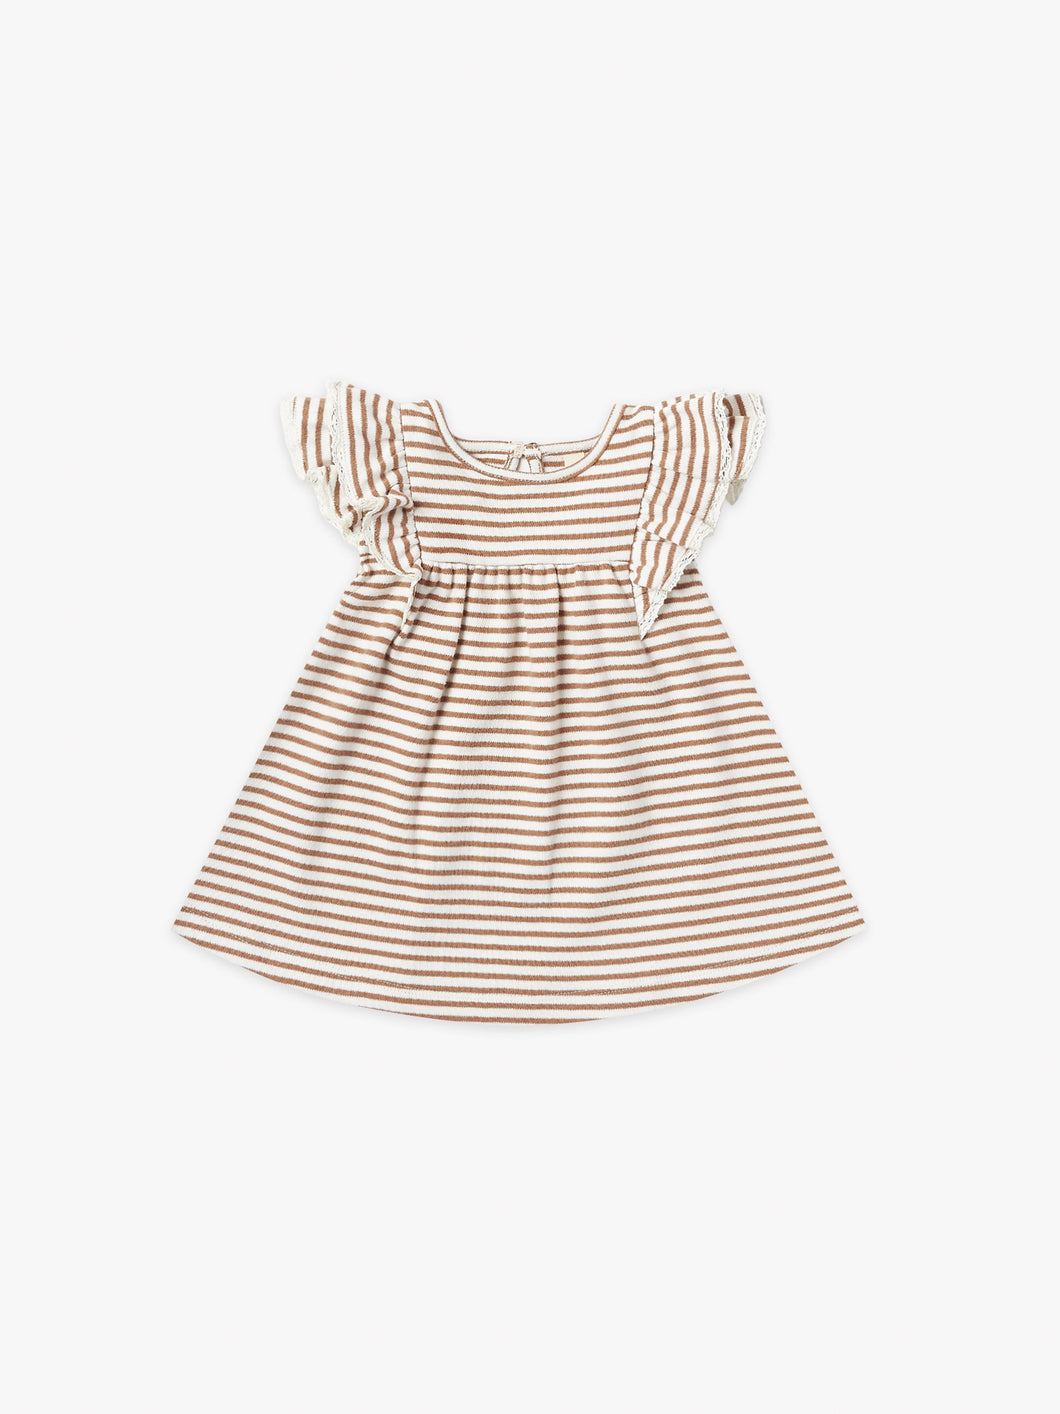 Quincy Mae S/S Flutter Dress - Rust Stripe